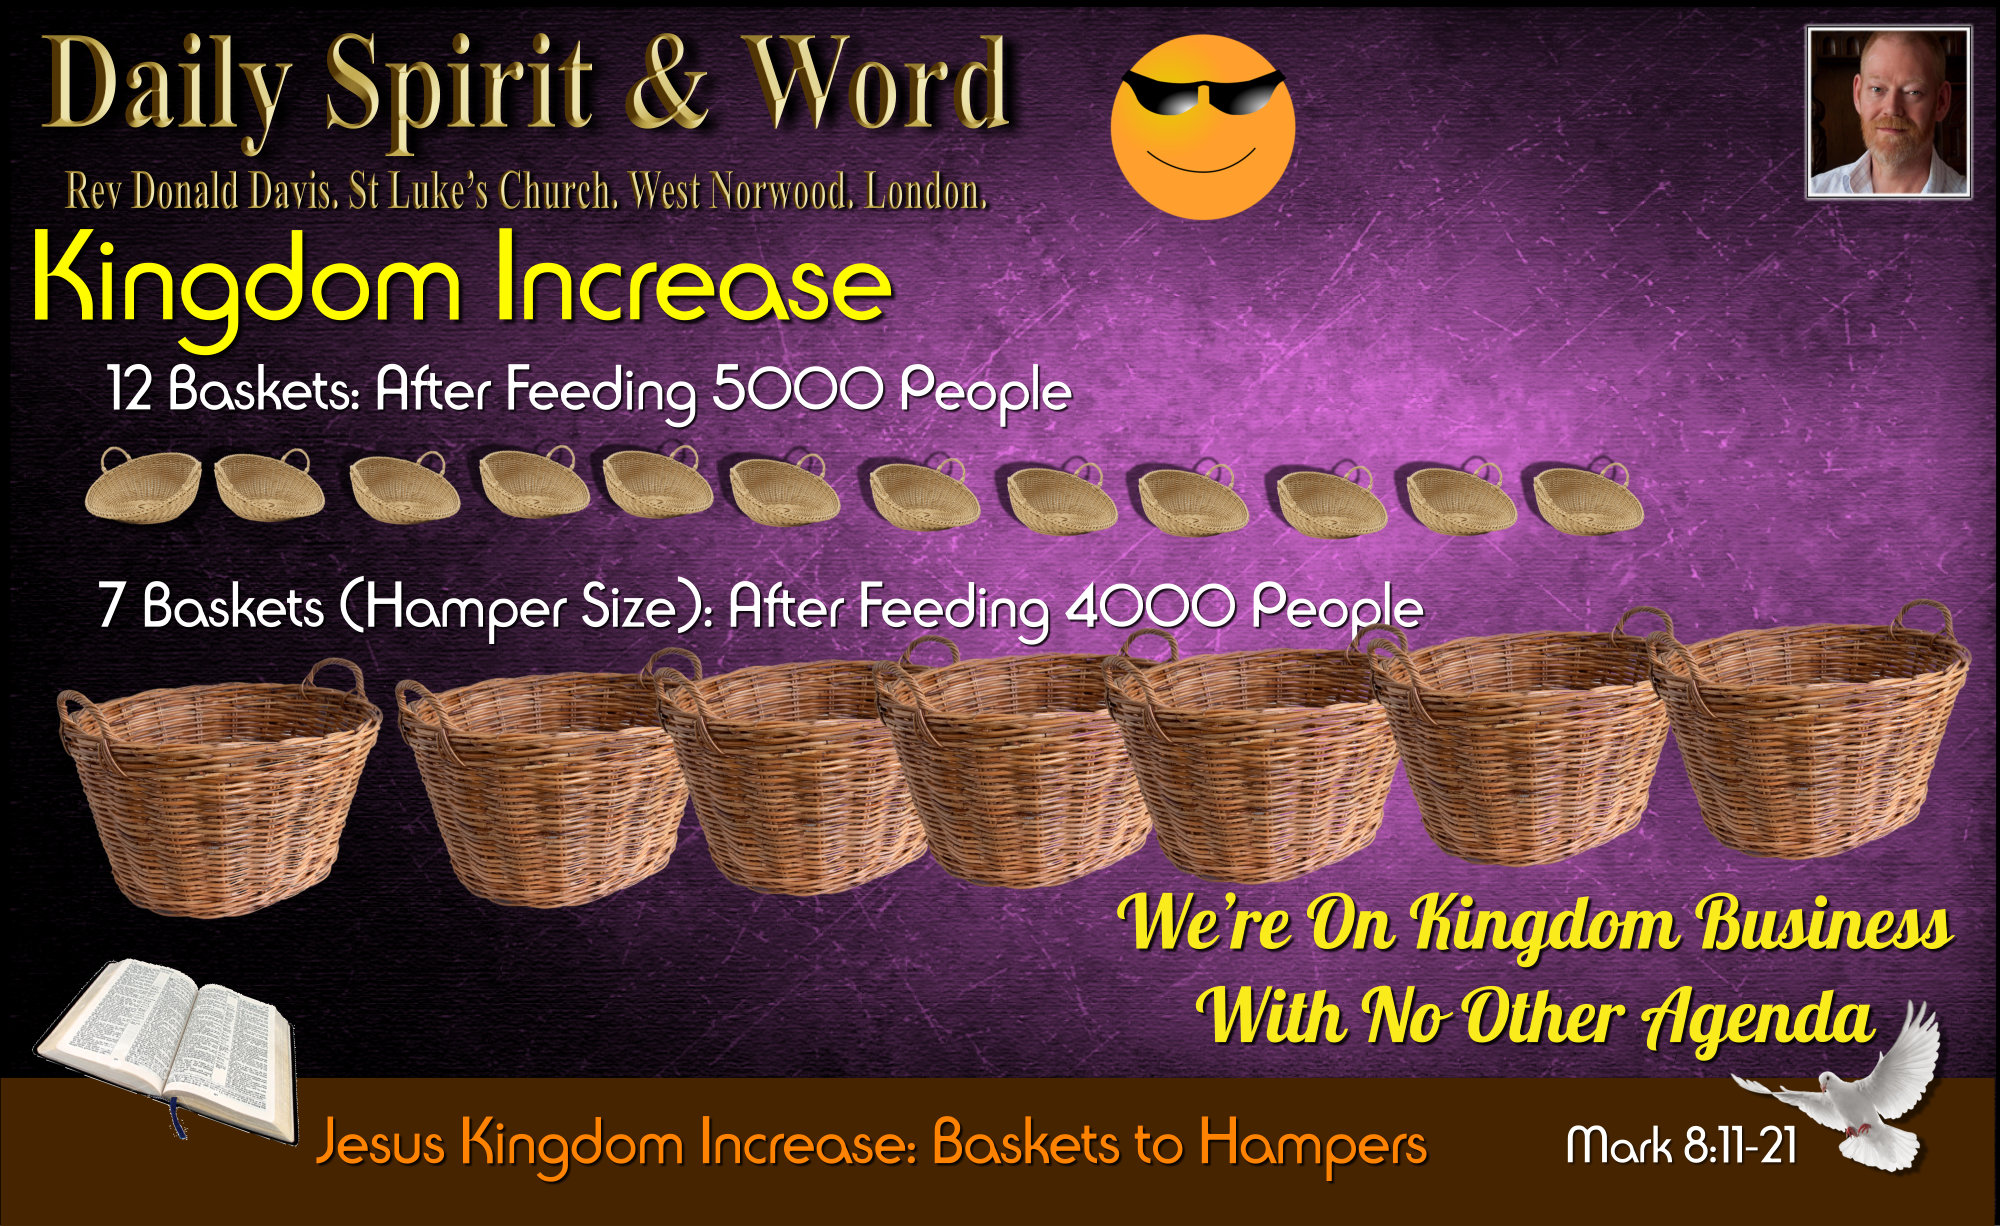 Kingdom Increase, from Baskets to Hampers.